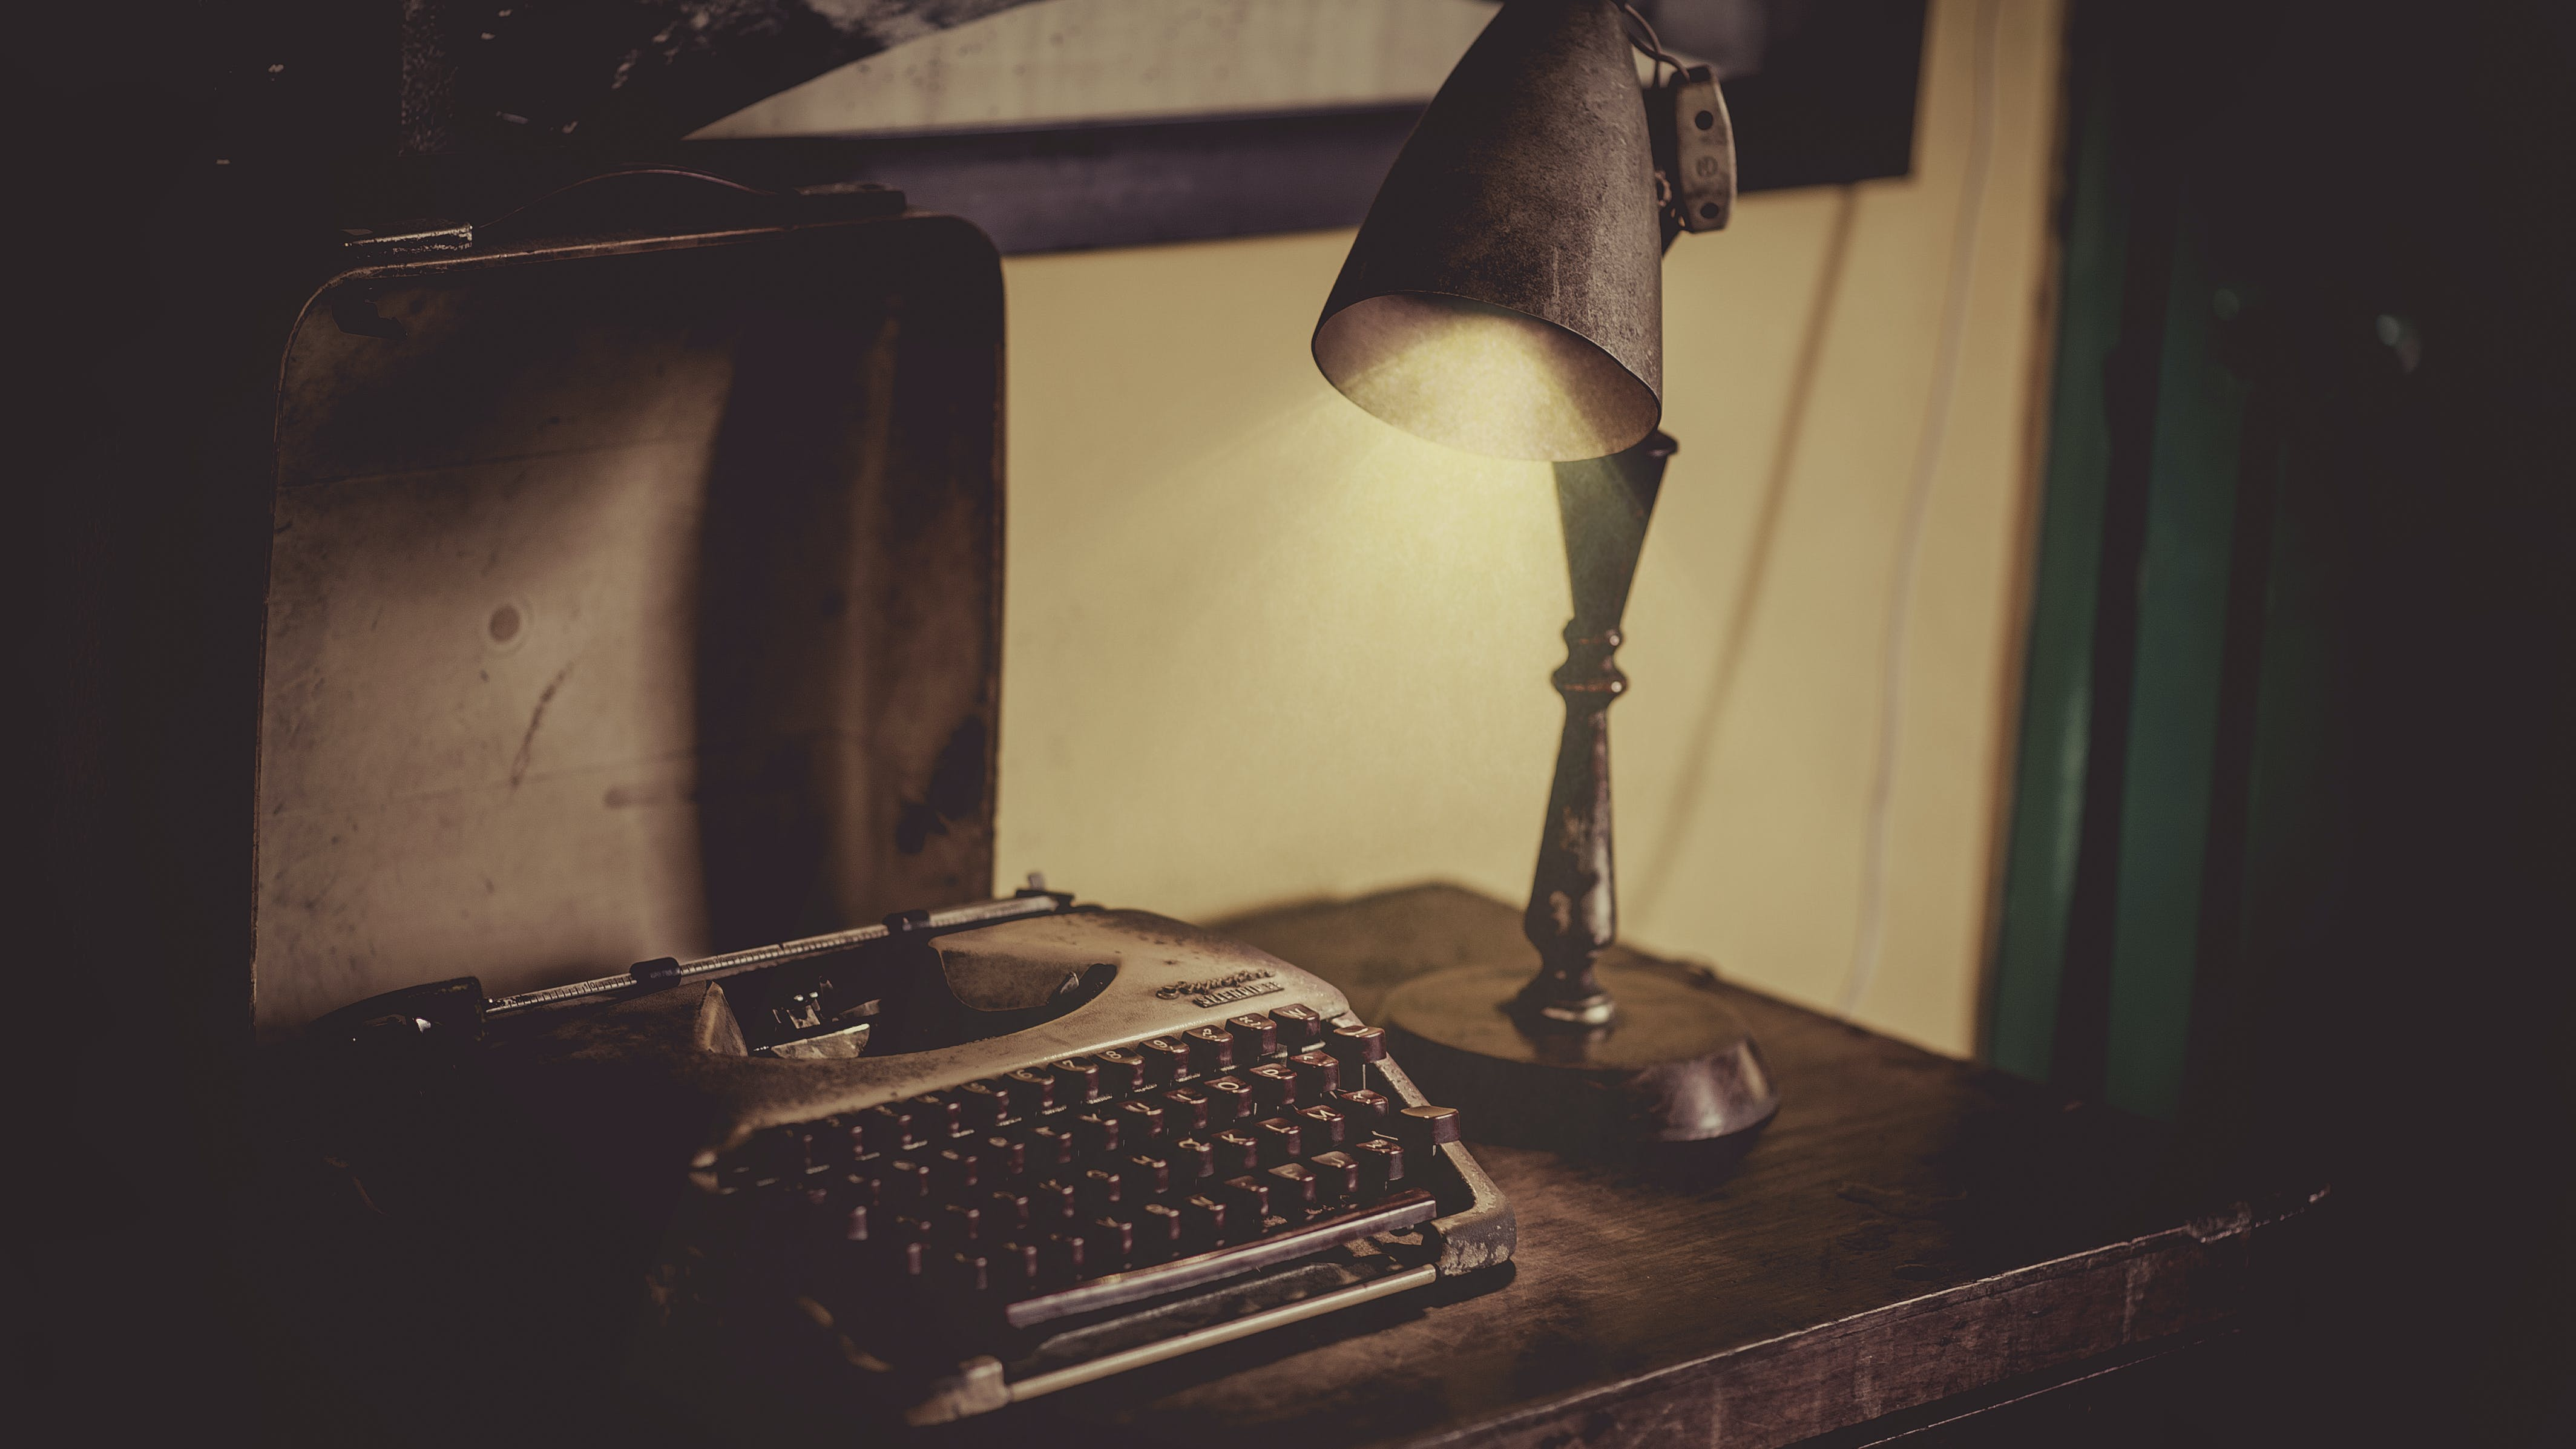 Sephia Photography of Desk Lamp Lightened the Gray Typewriter on Wooden Table